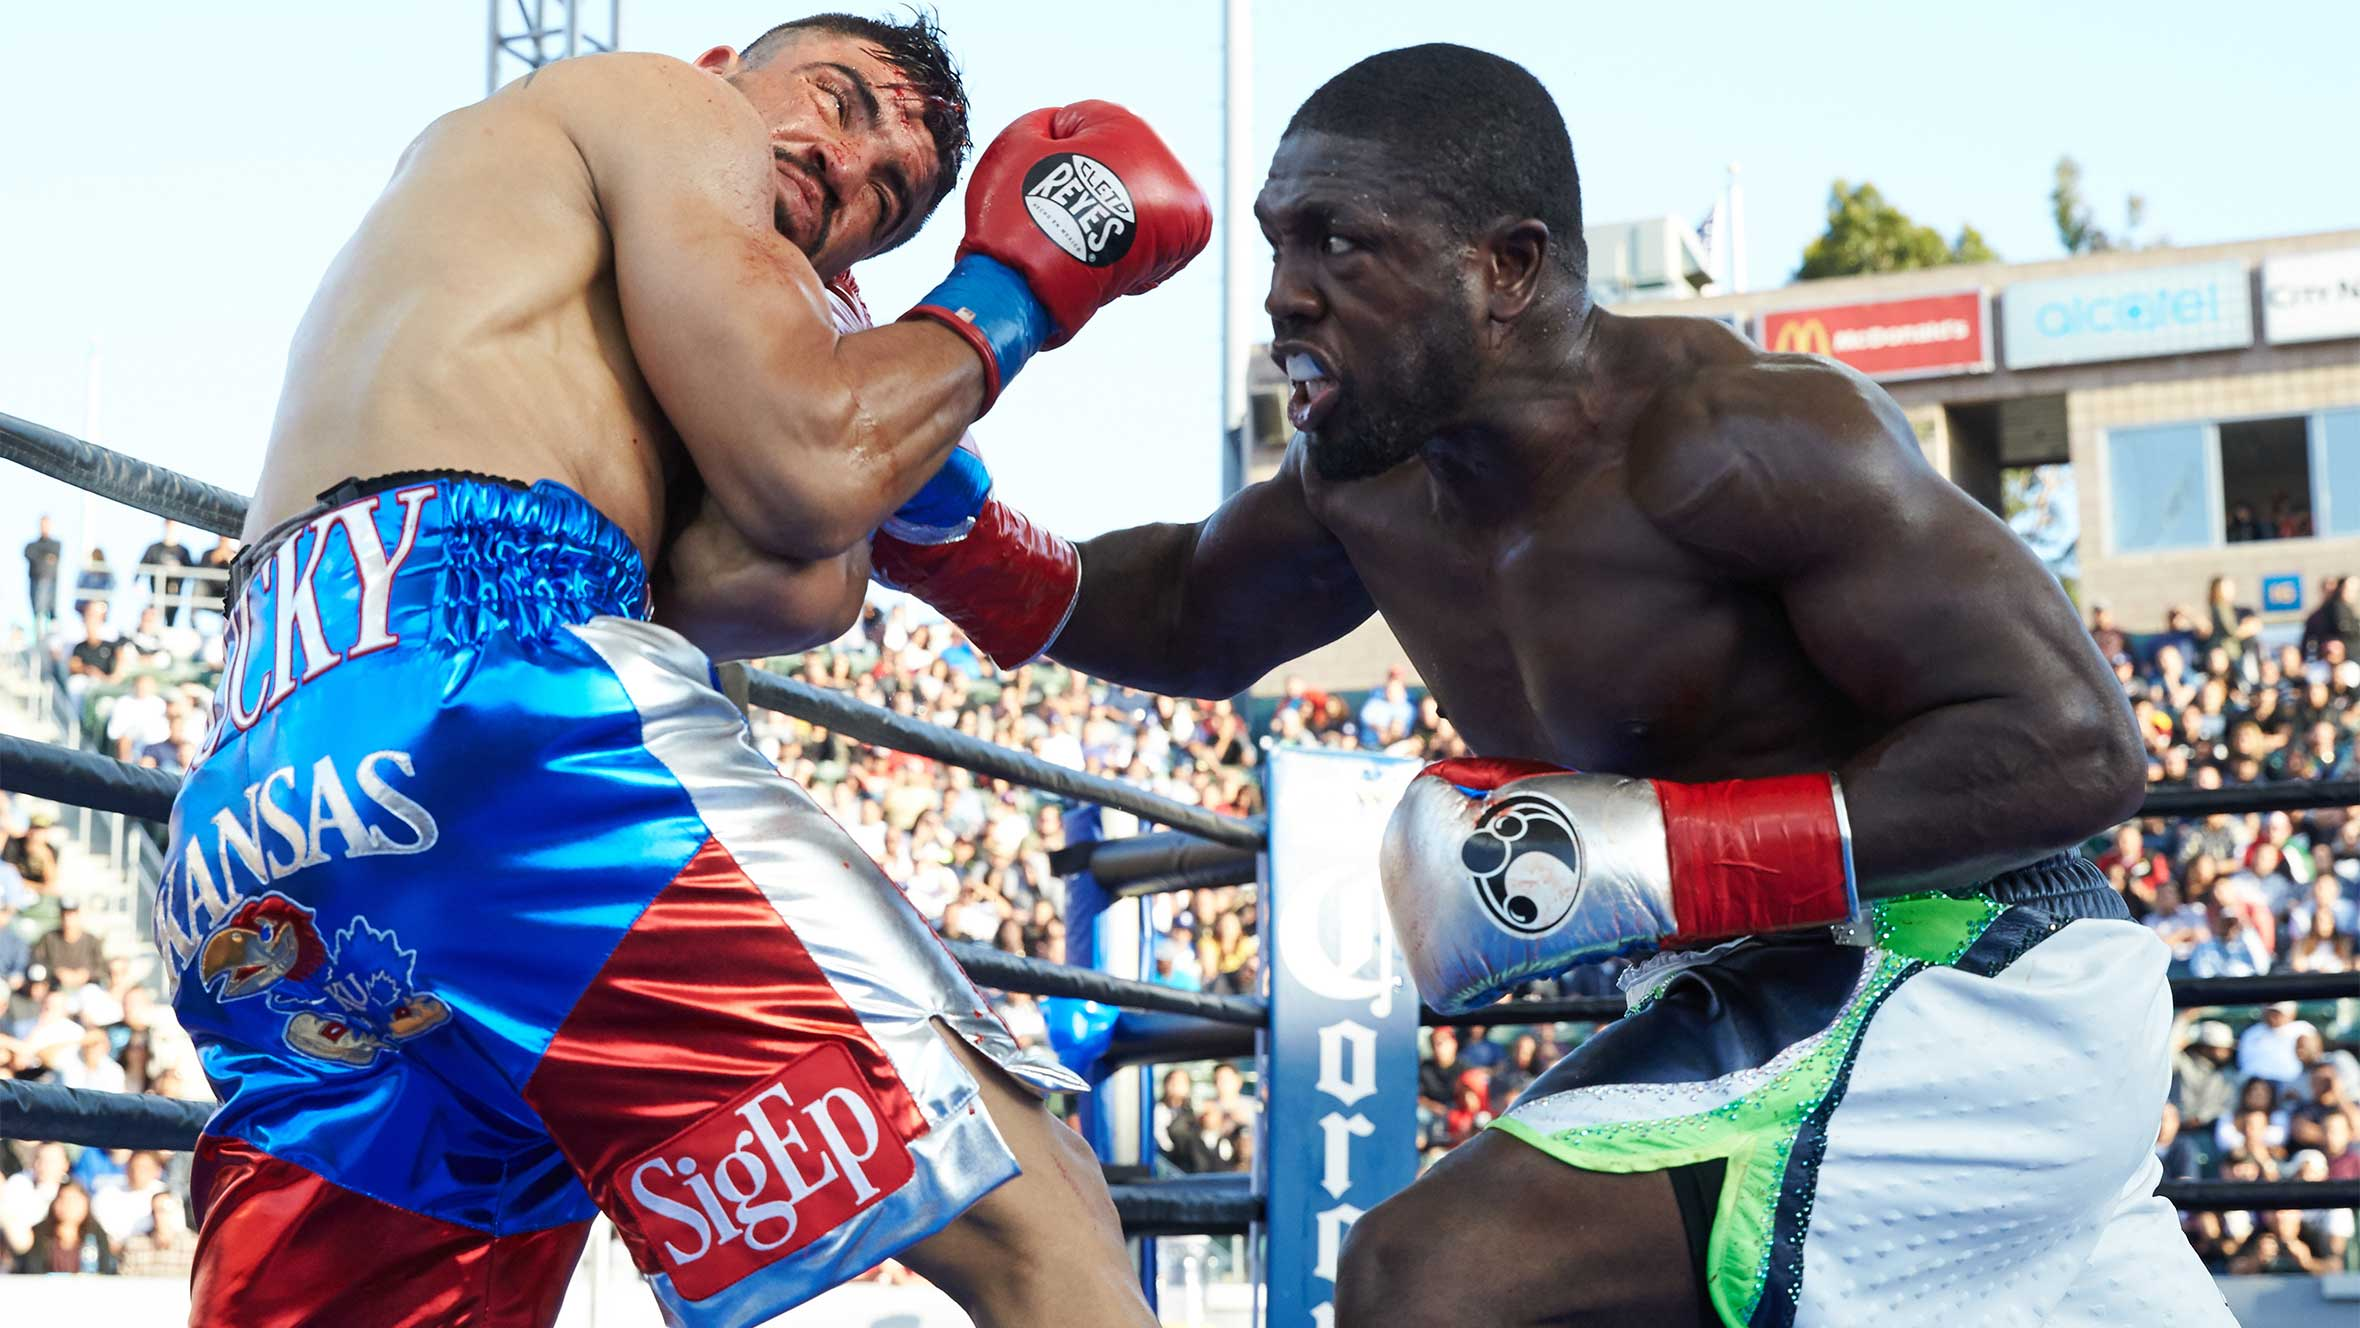 Andre Berto stopped Victor Ortiz in the fourth round in their rematch in April 2016. Photo: Suzanne Teresa/Premier Boxing Champions